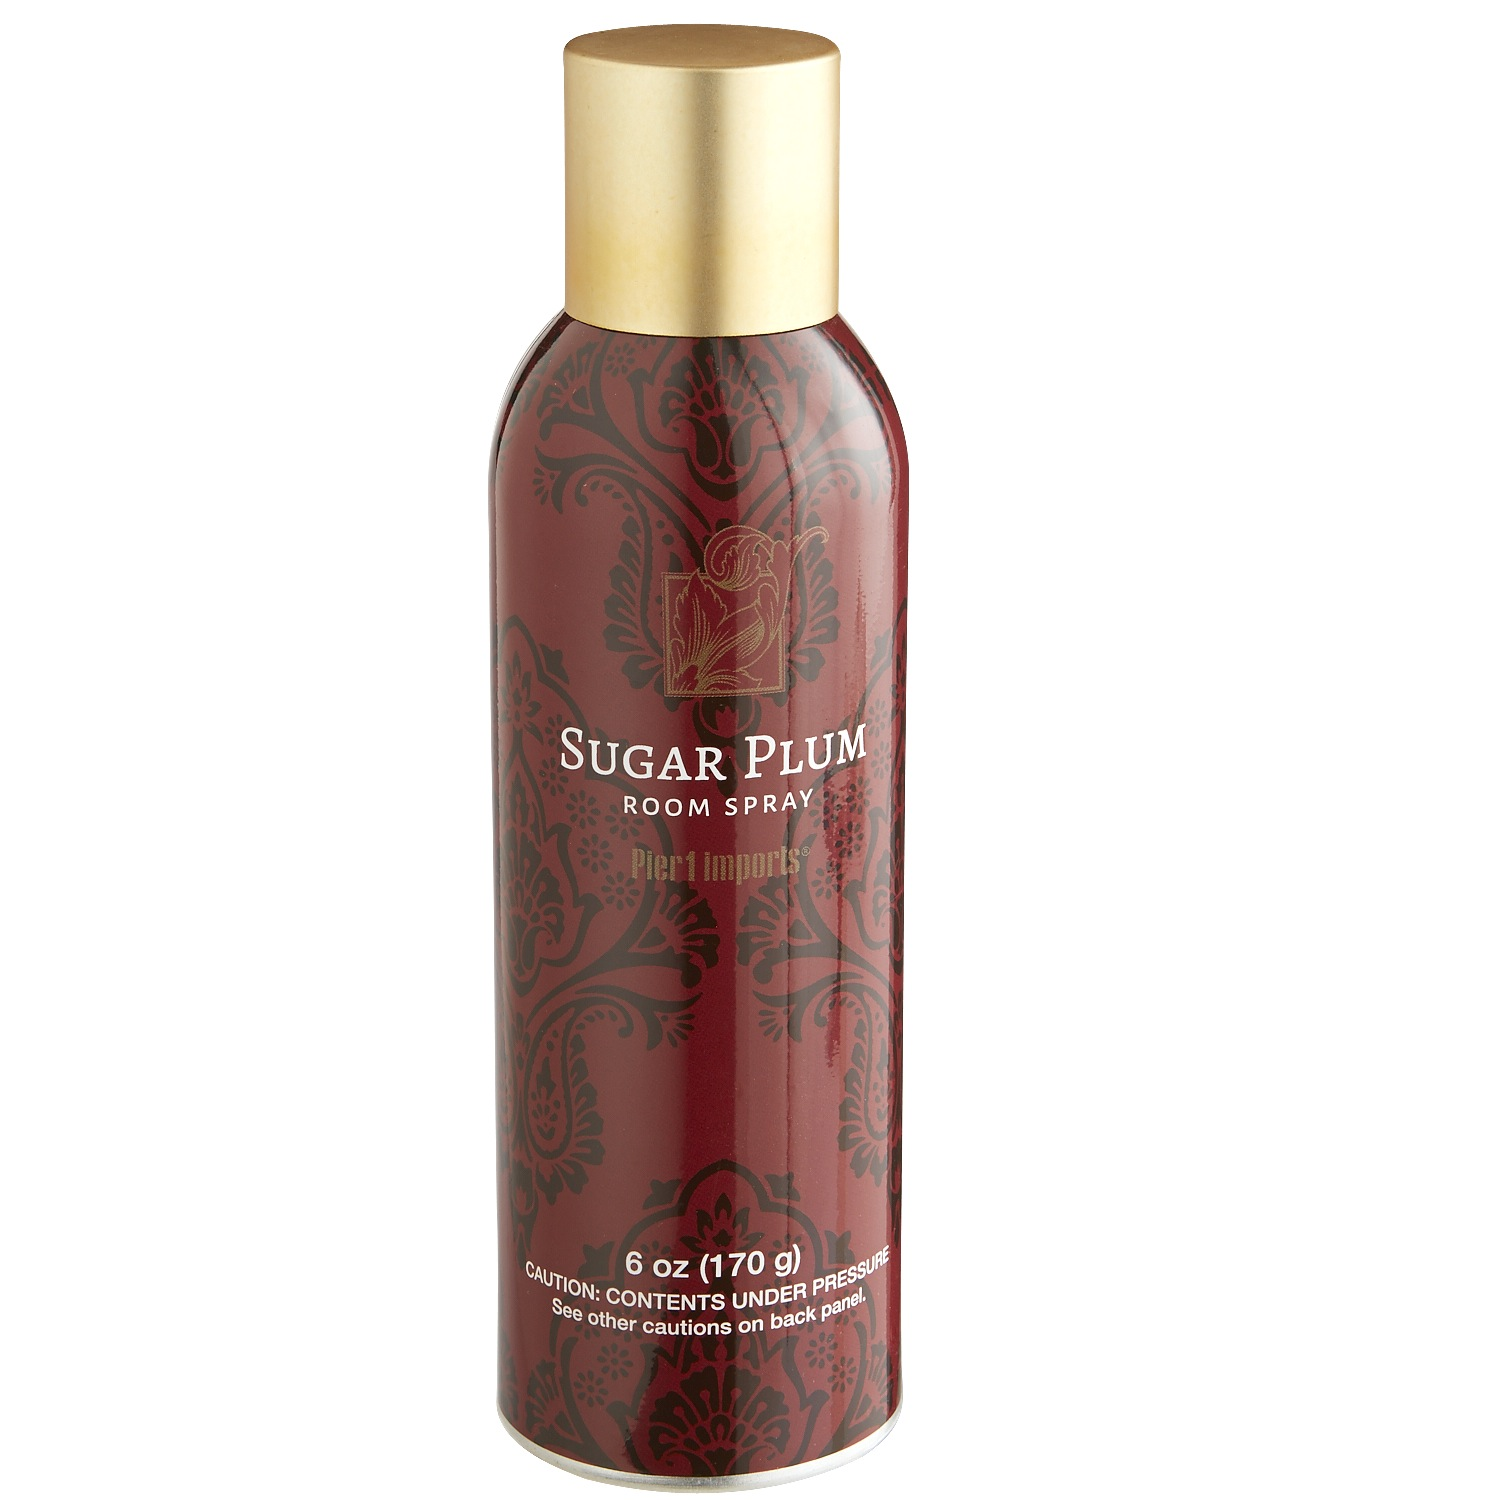 Sugar Plum Room Spray